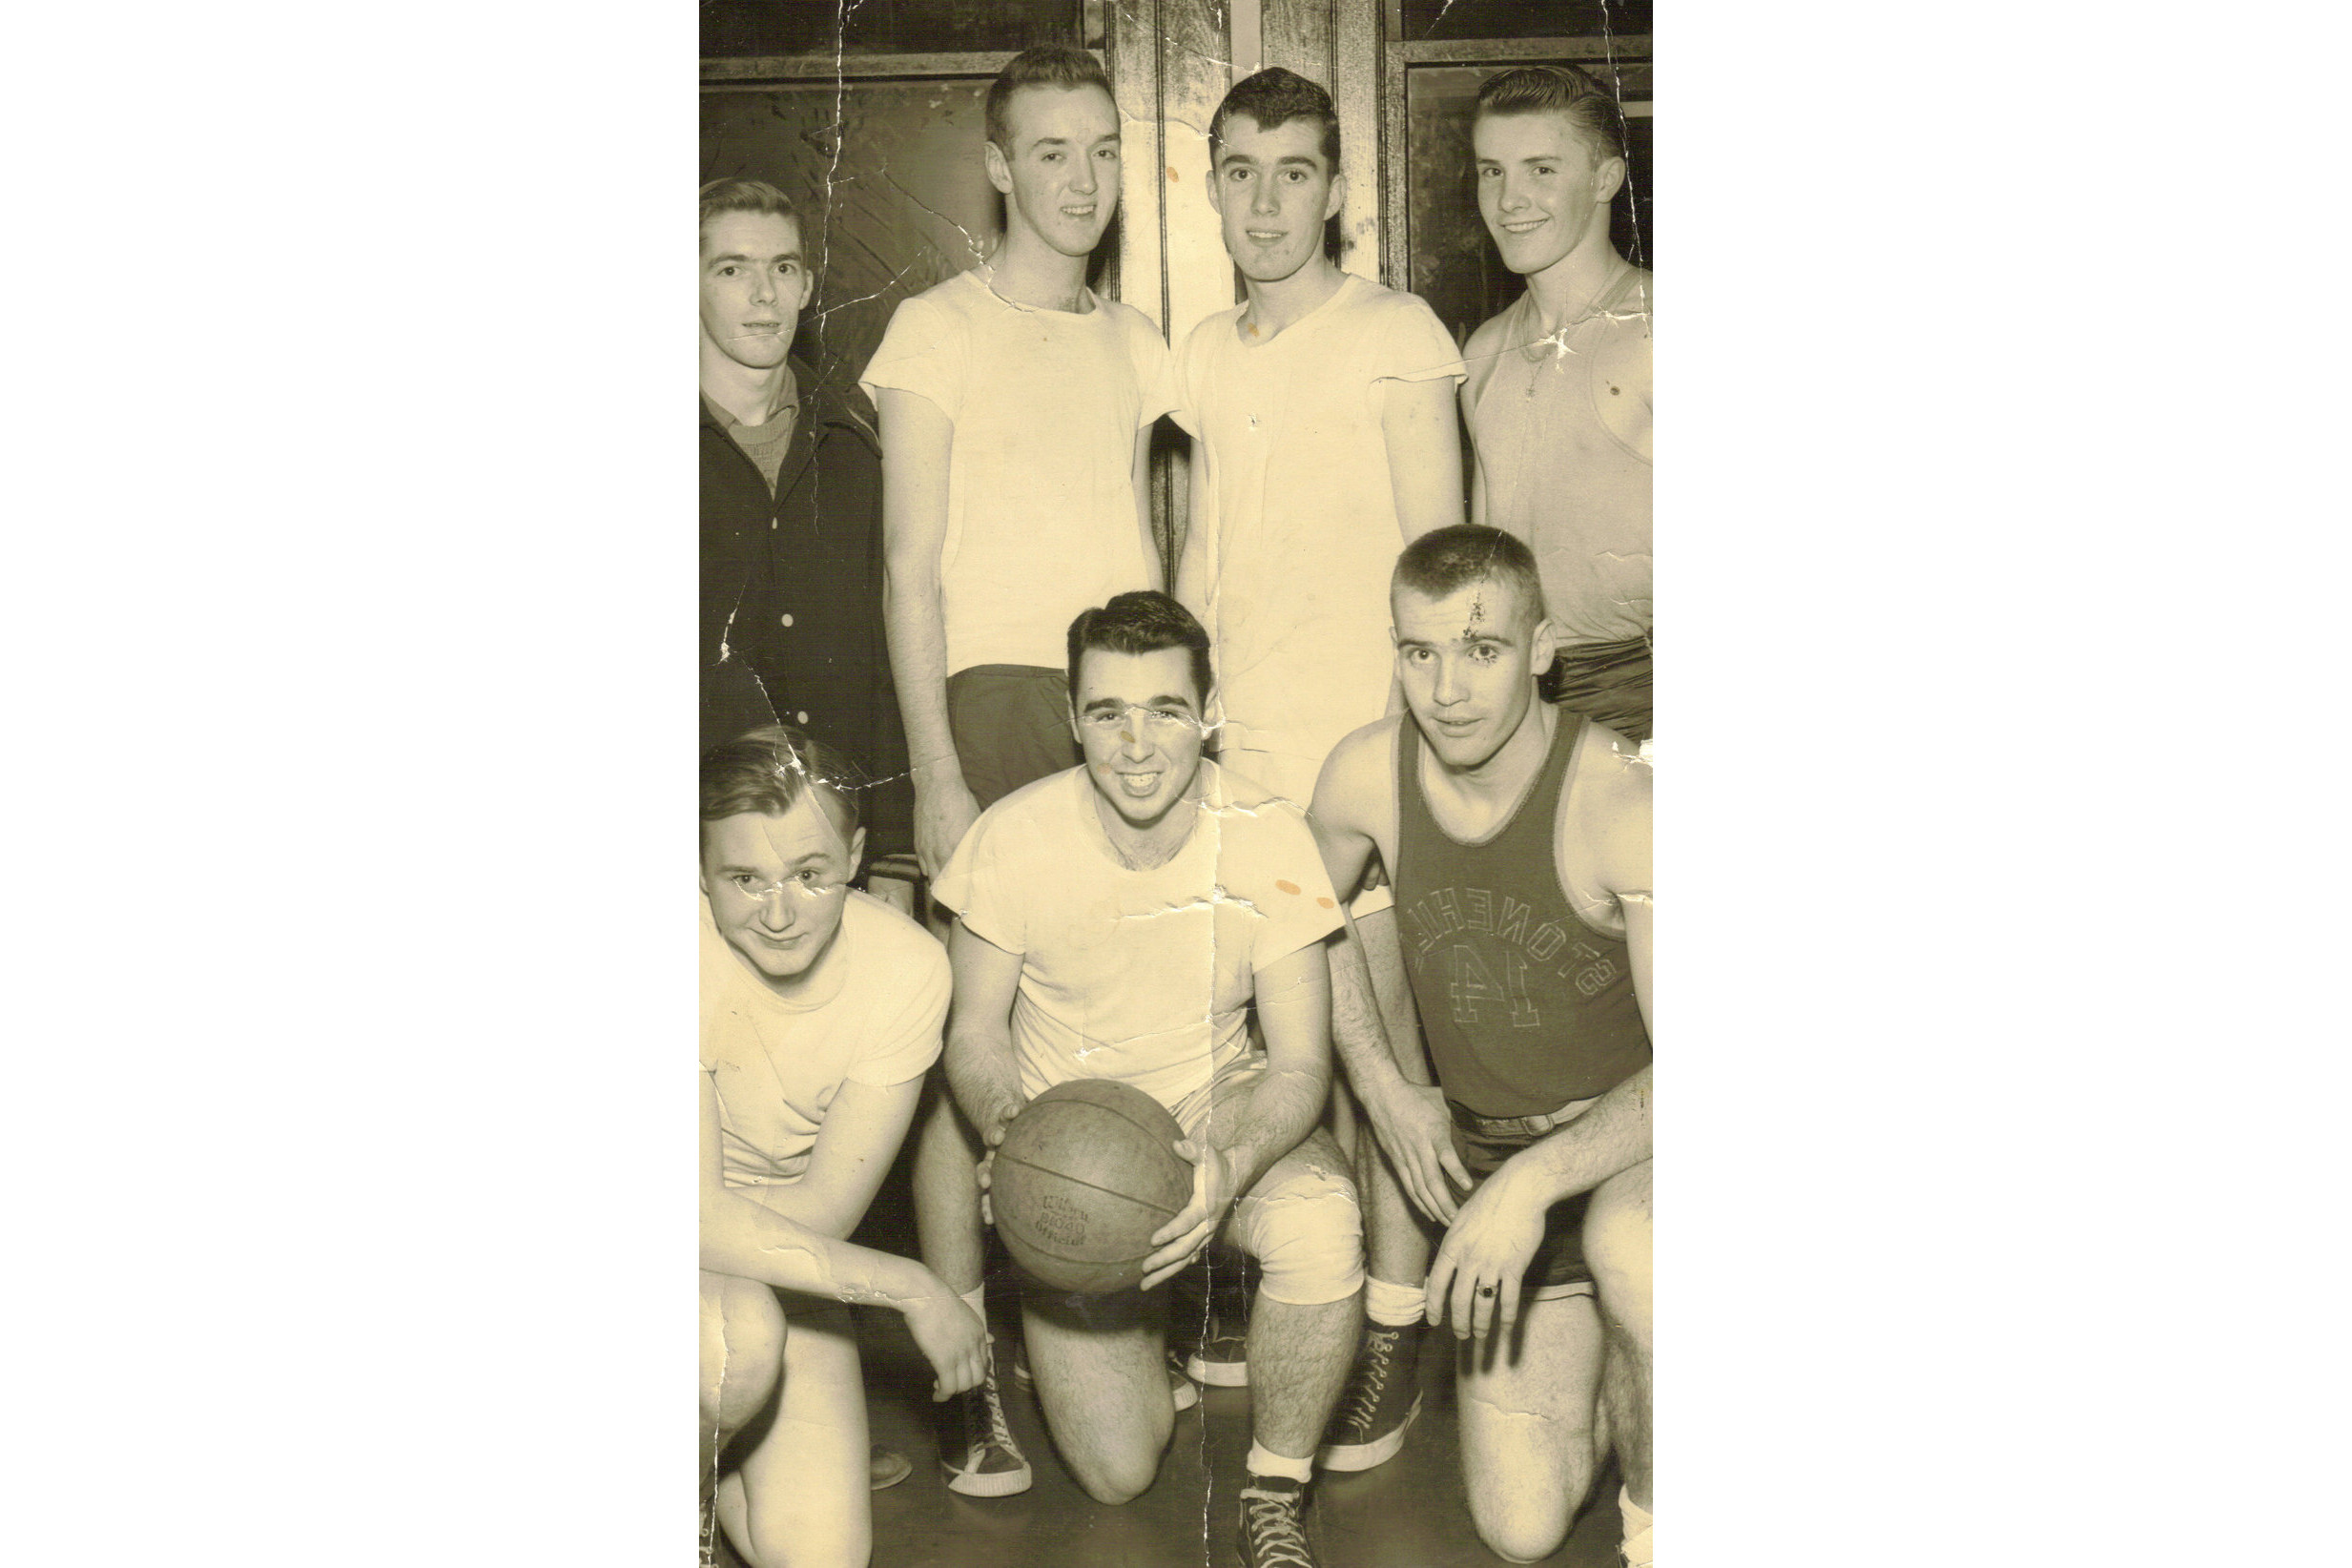 Division Basketball Champs, Park League, 1950. Front row from left to right, Bob Power, Tom Griffin, and Eddie Donovan. Rear row from left to right, Bob Quinn, Dickie Sullivan, Frannie Tighe, and Billy Donovan.